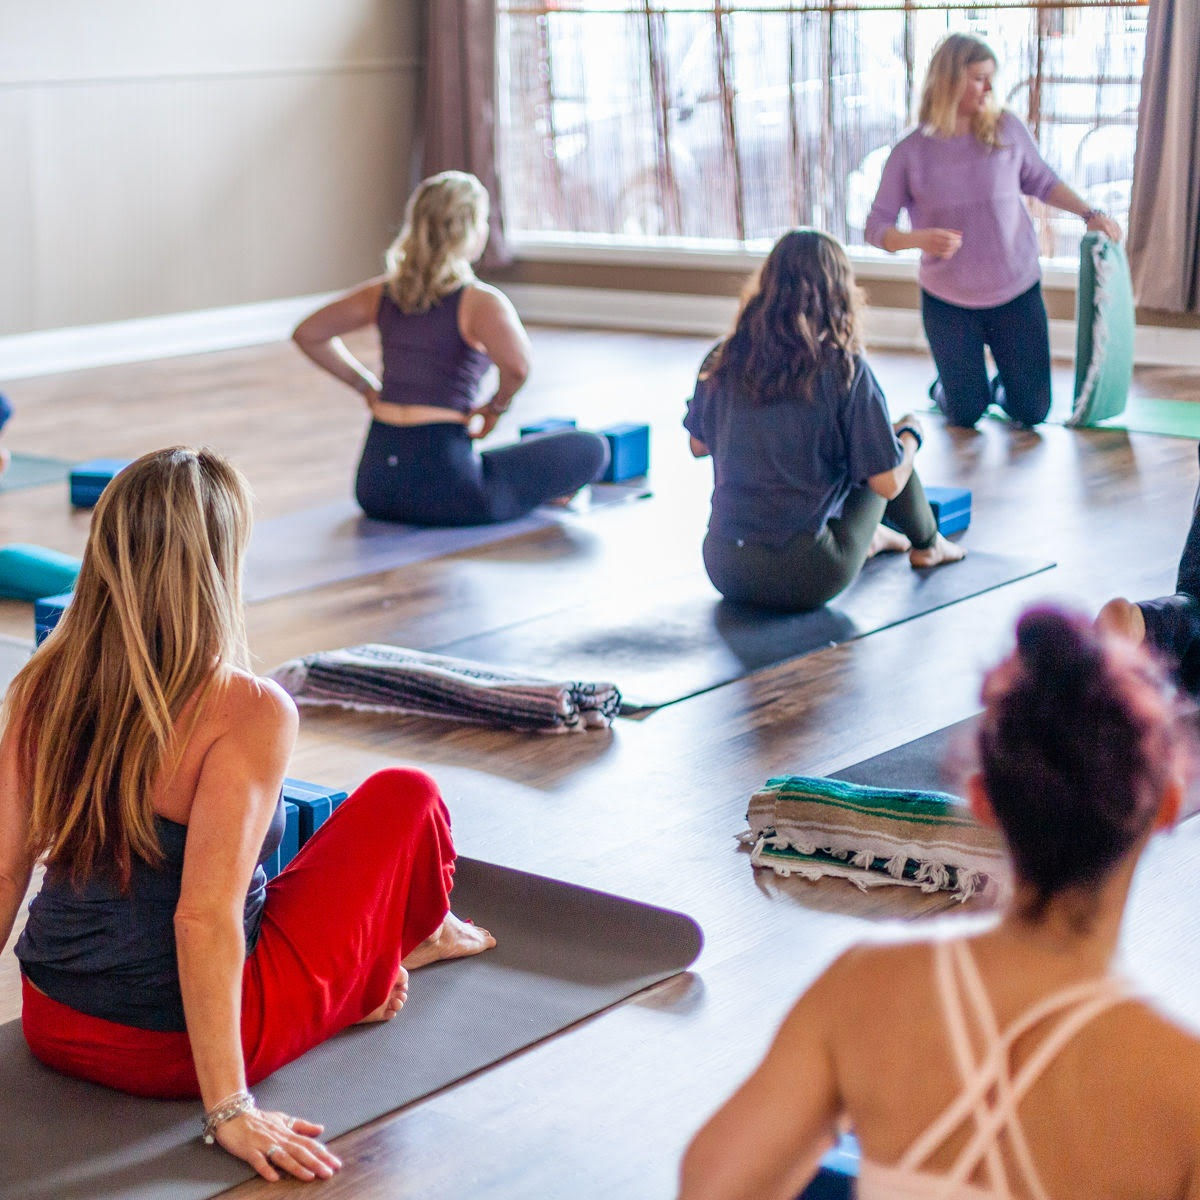 Classes & Events - Check out my upcoming classes and events! I currently hold all of my classes and events at Anchor Yoga in Mattapoisett.